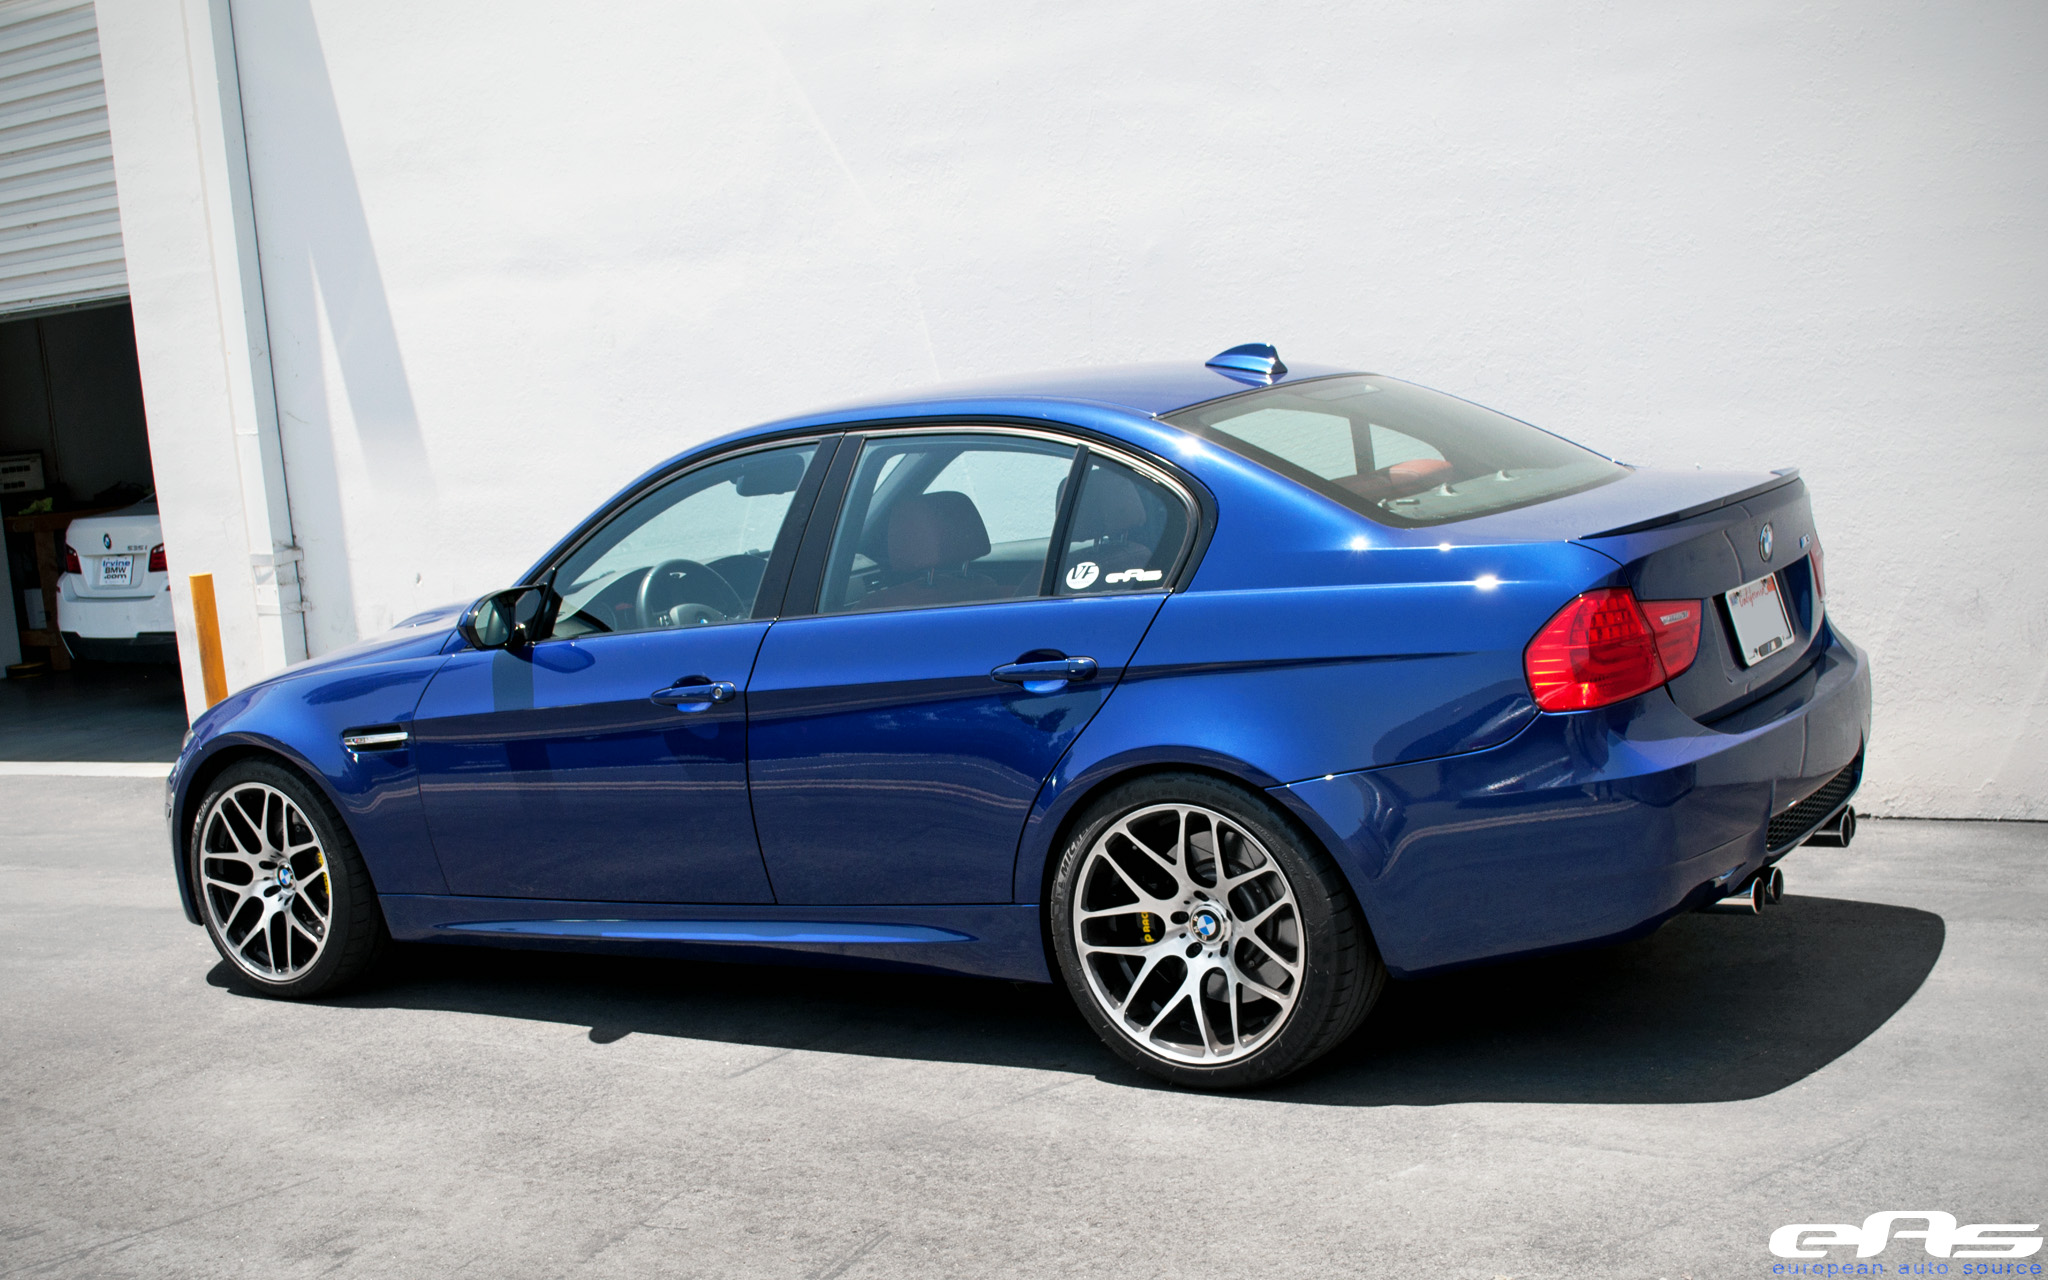 Interlagos Blue M3 Sedan With Ap Racing Brakes